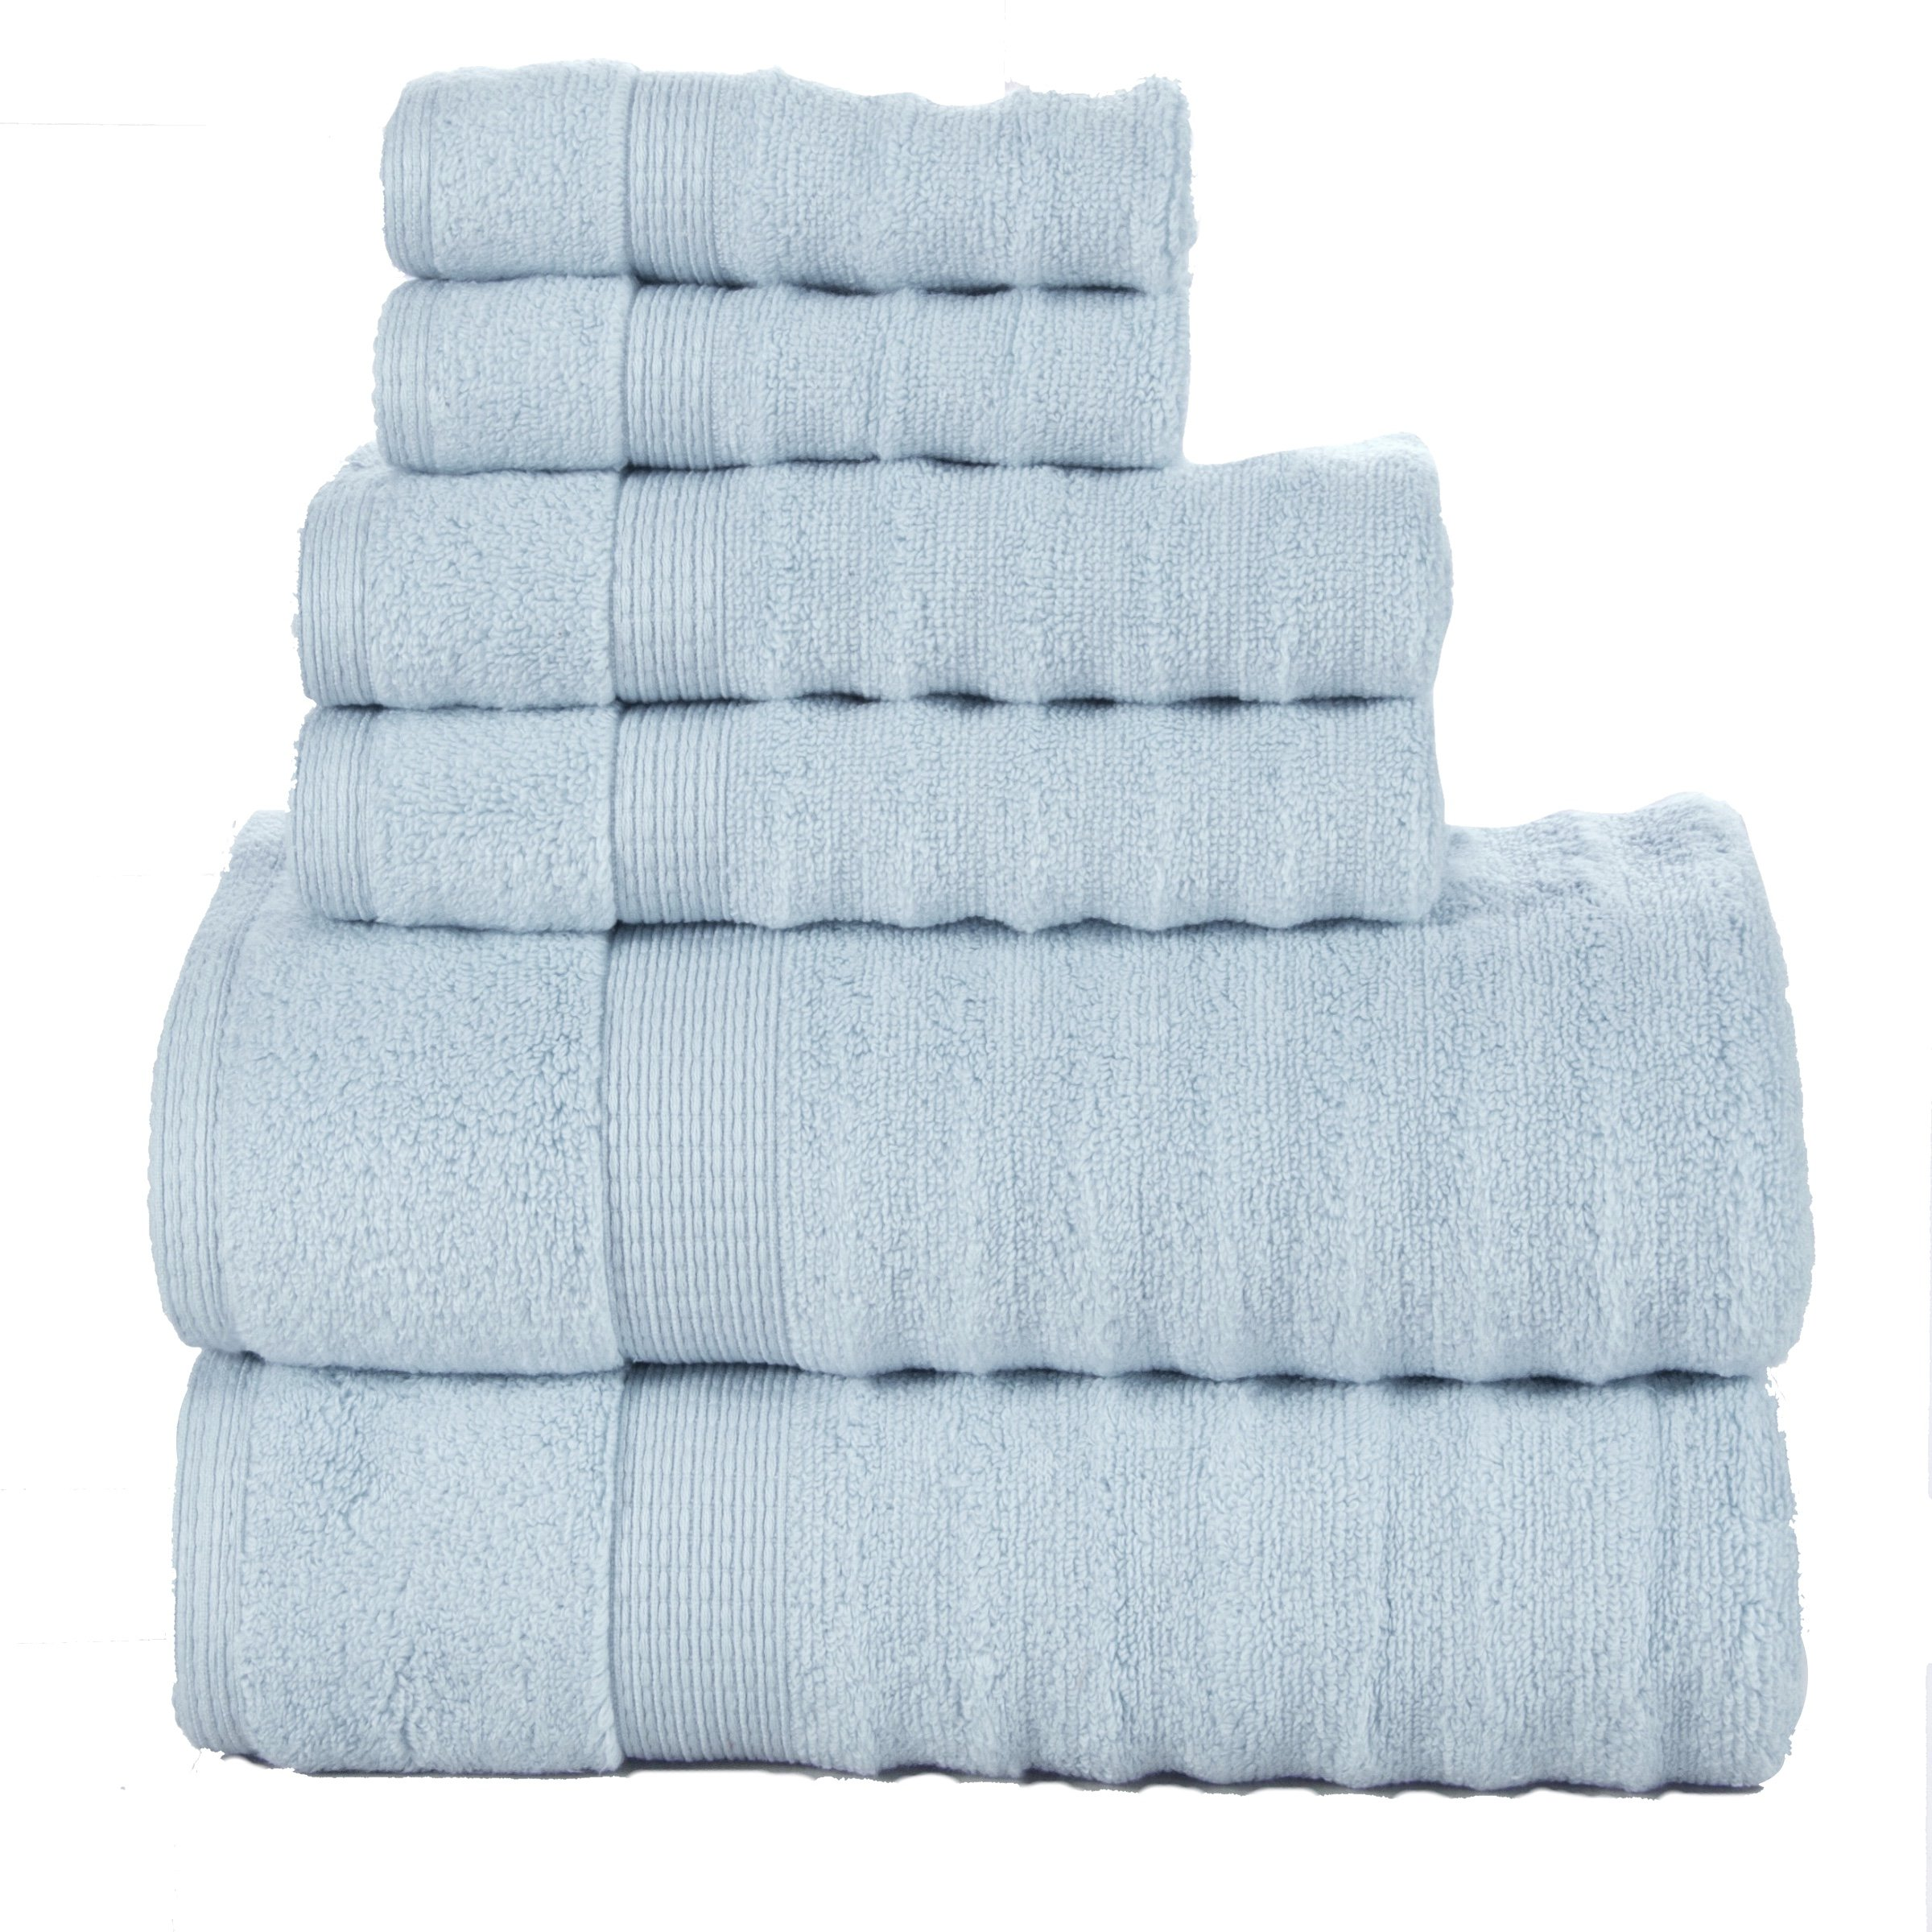 Affinity Home Collection 6 Piece Quick Dry Elegance Spa Zero Twist Cotton Ribbed Towel Set, Blue